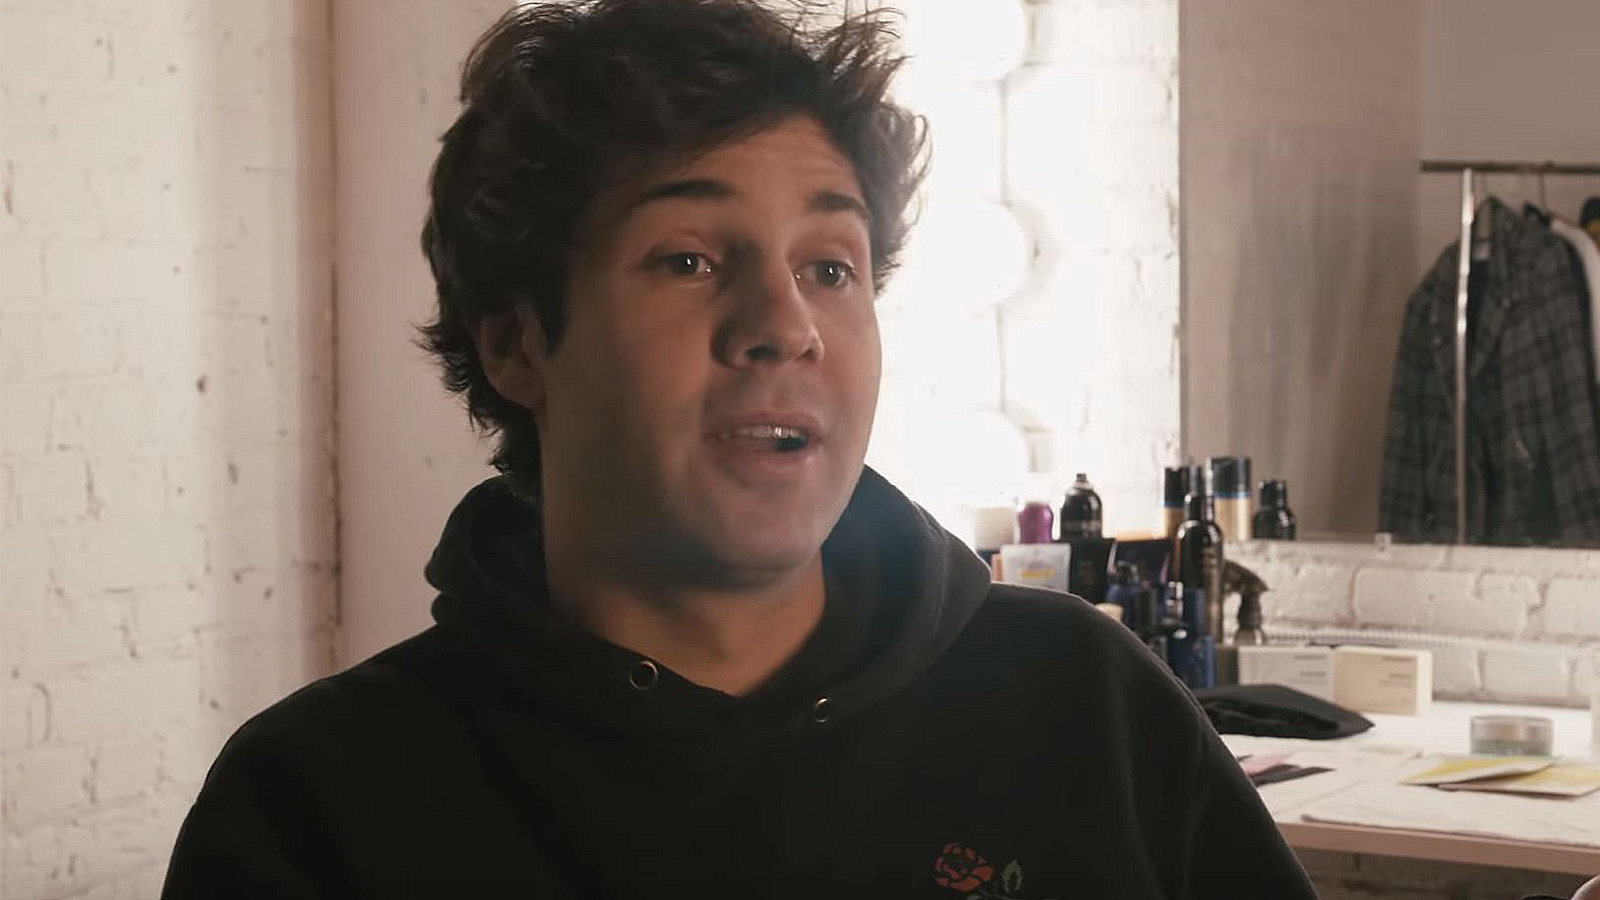 David Dobrik addresses rumors about his sexuality